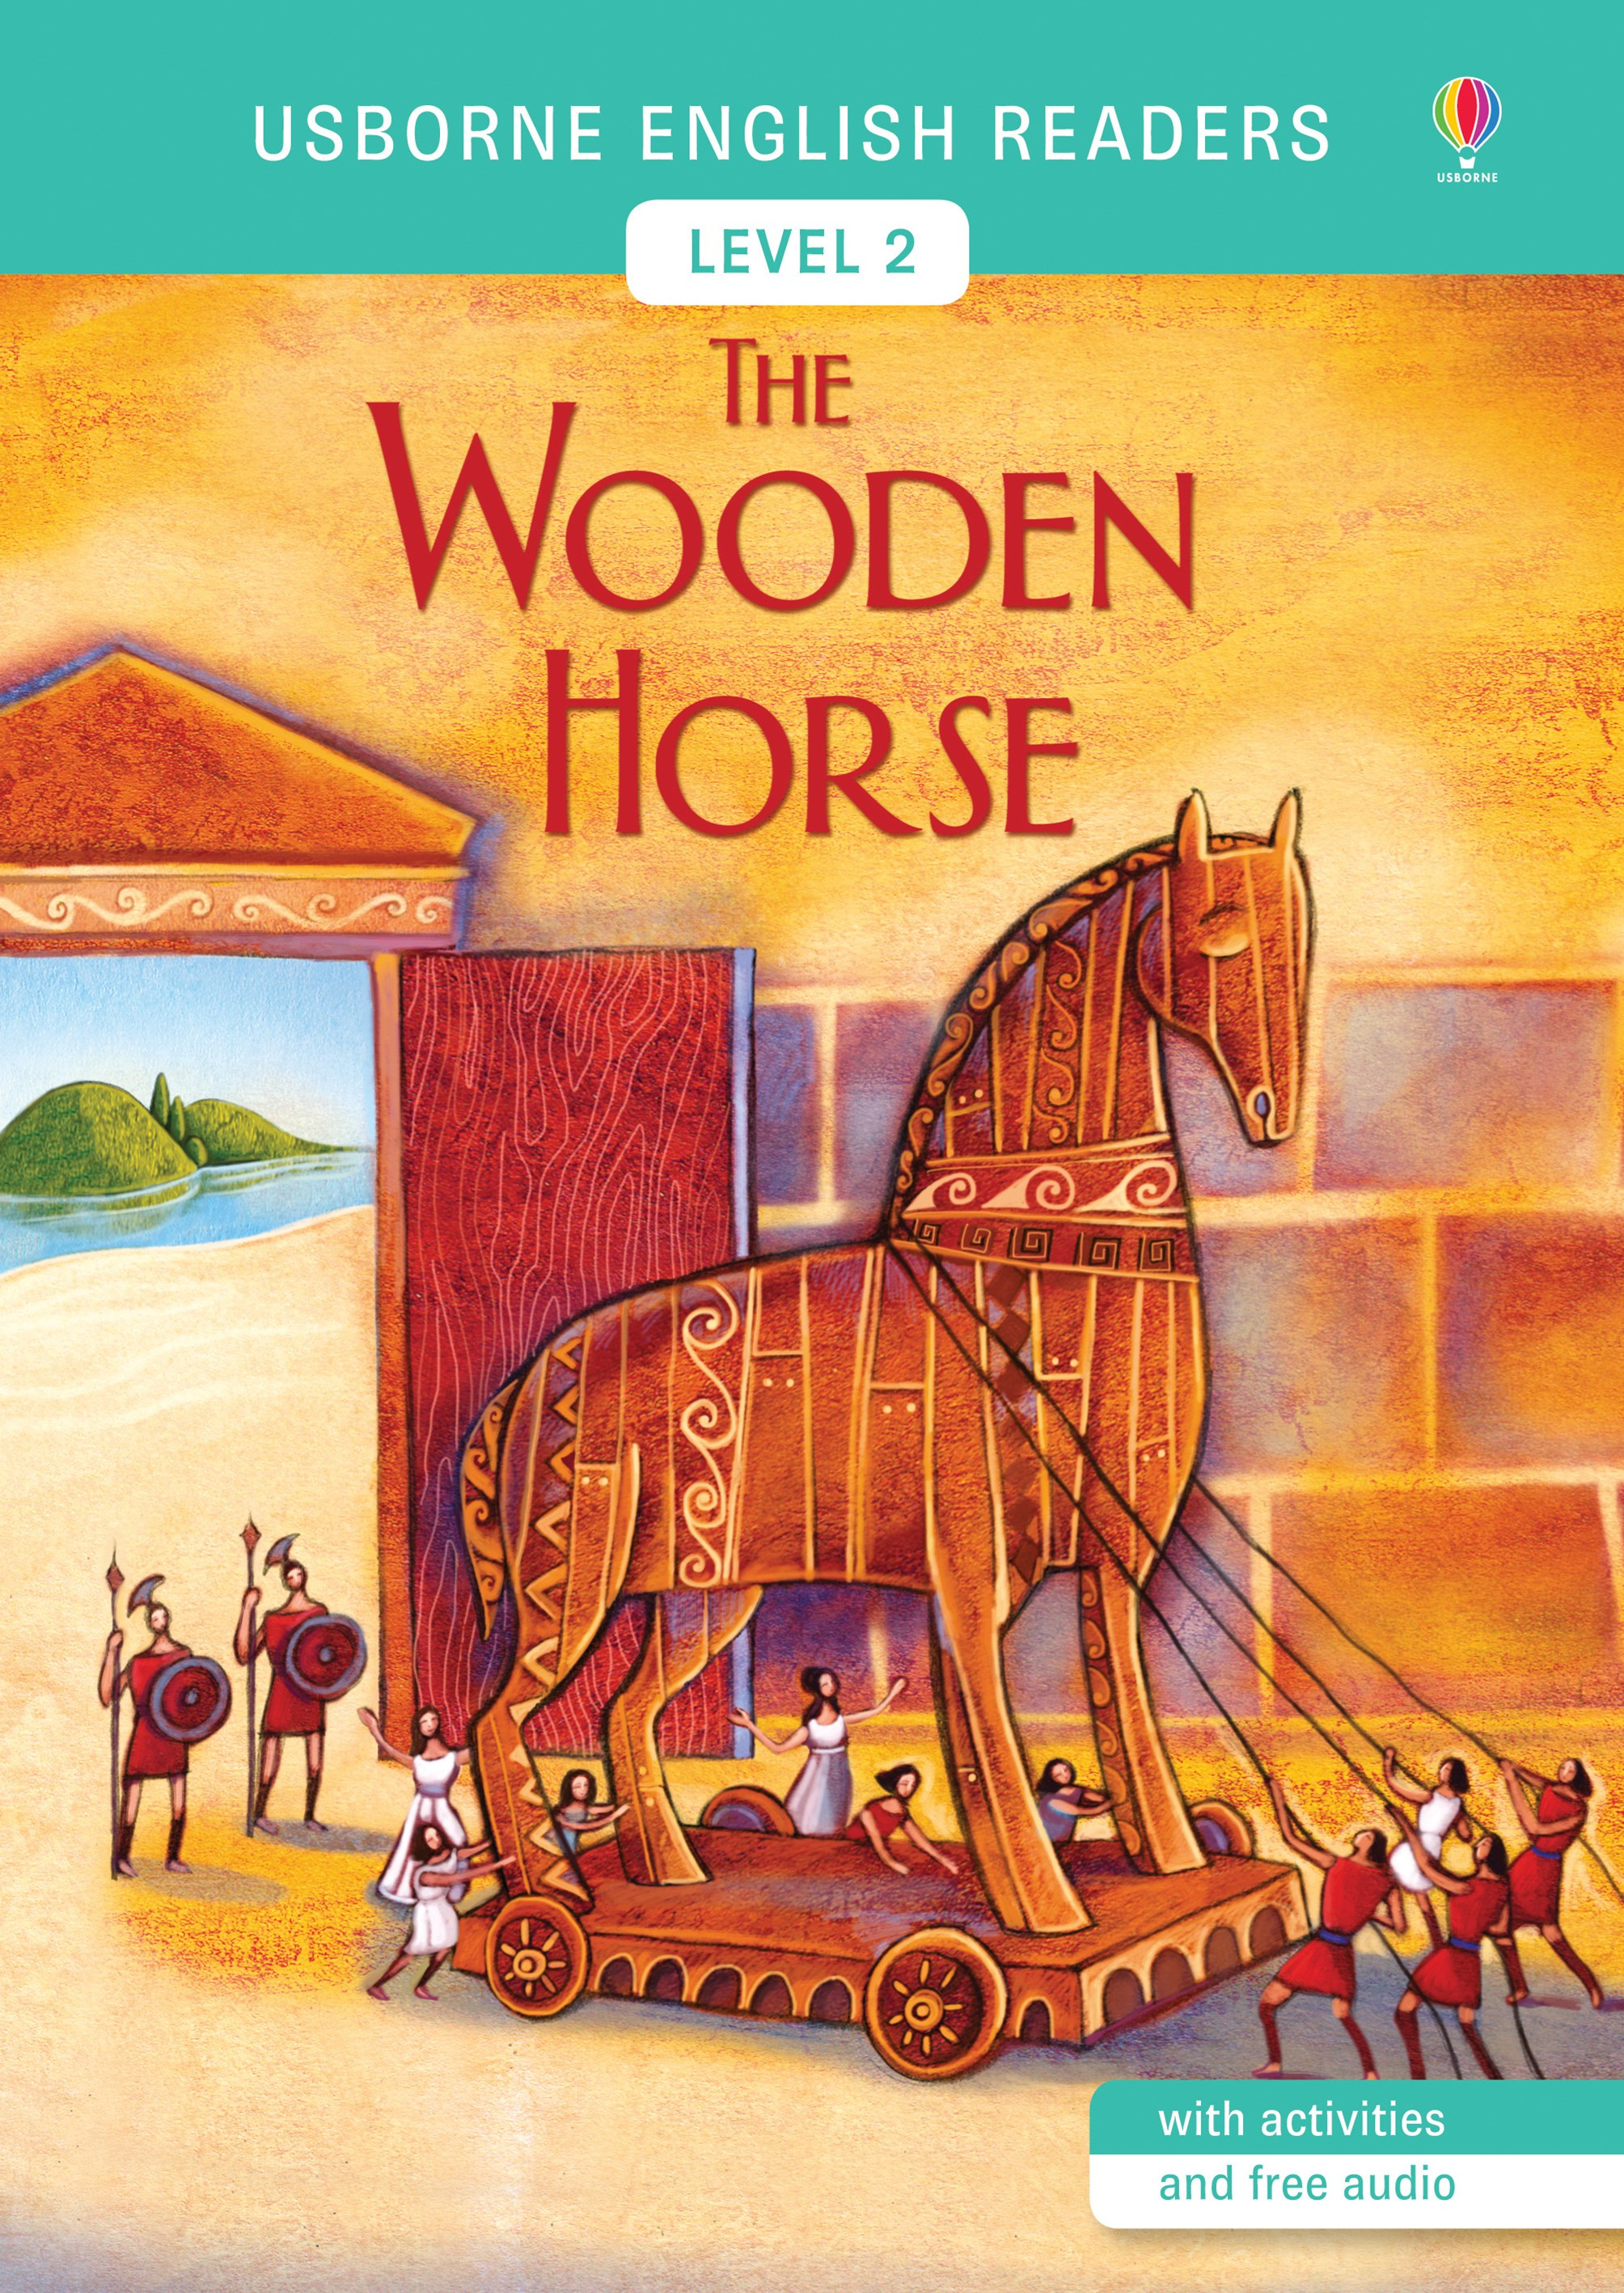 Usborne English Readers: The Wooden Horse